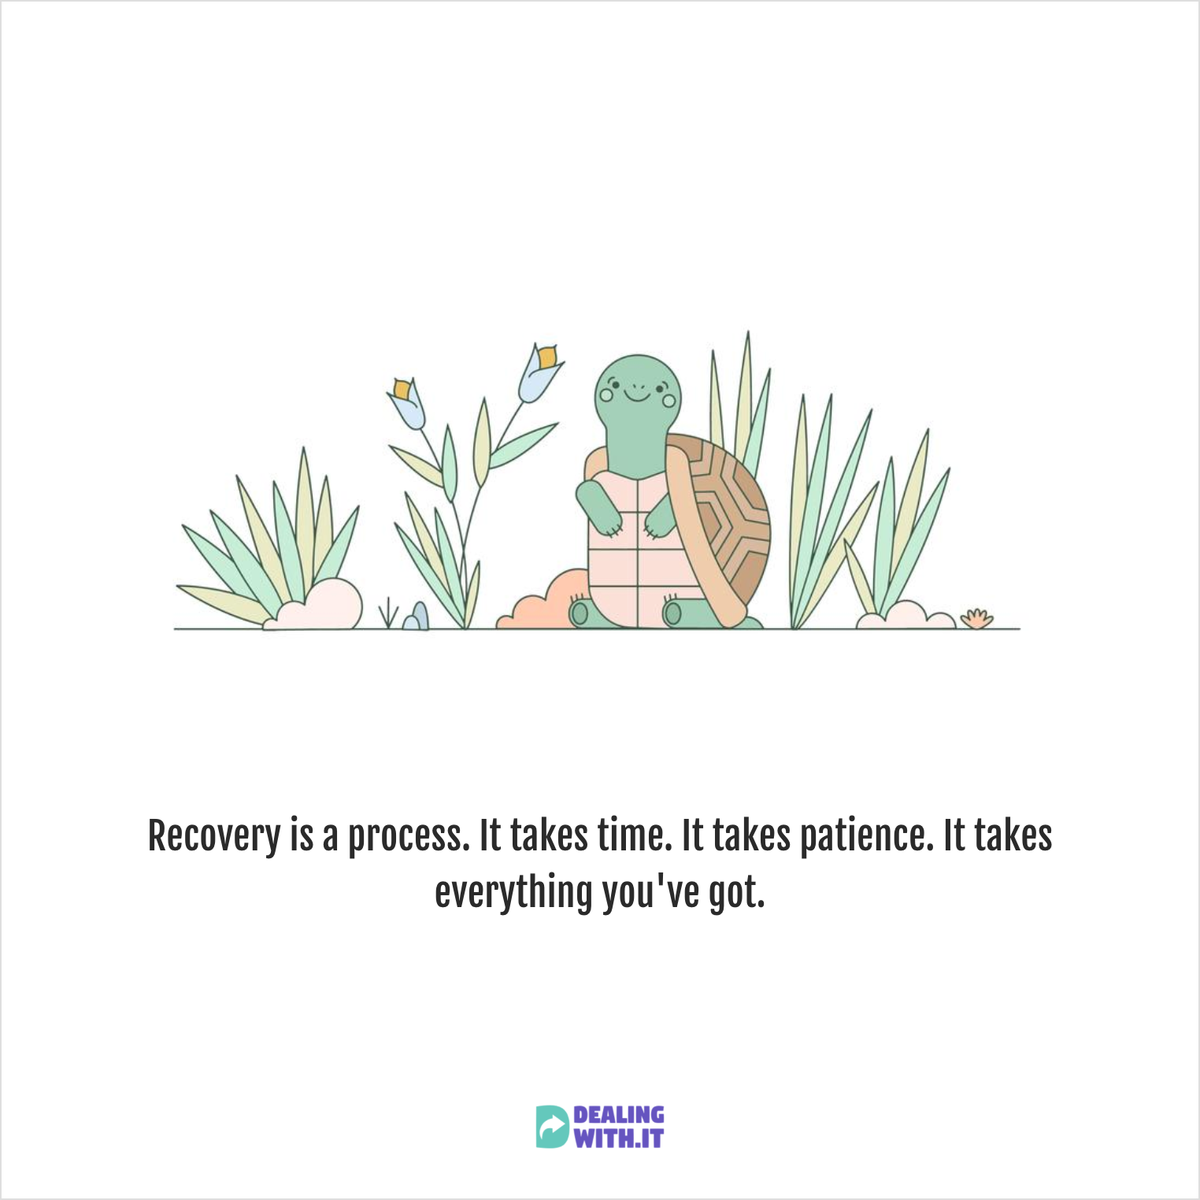 Understand that recovery is a process, you need to be patient.  #Mentalhealth #MentalHealthAwareness #recovery #trauma https://t.co/3hgMjJKfyN